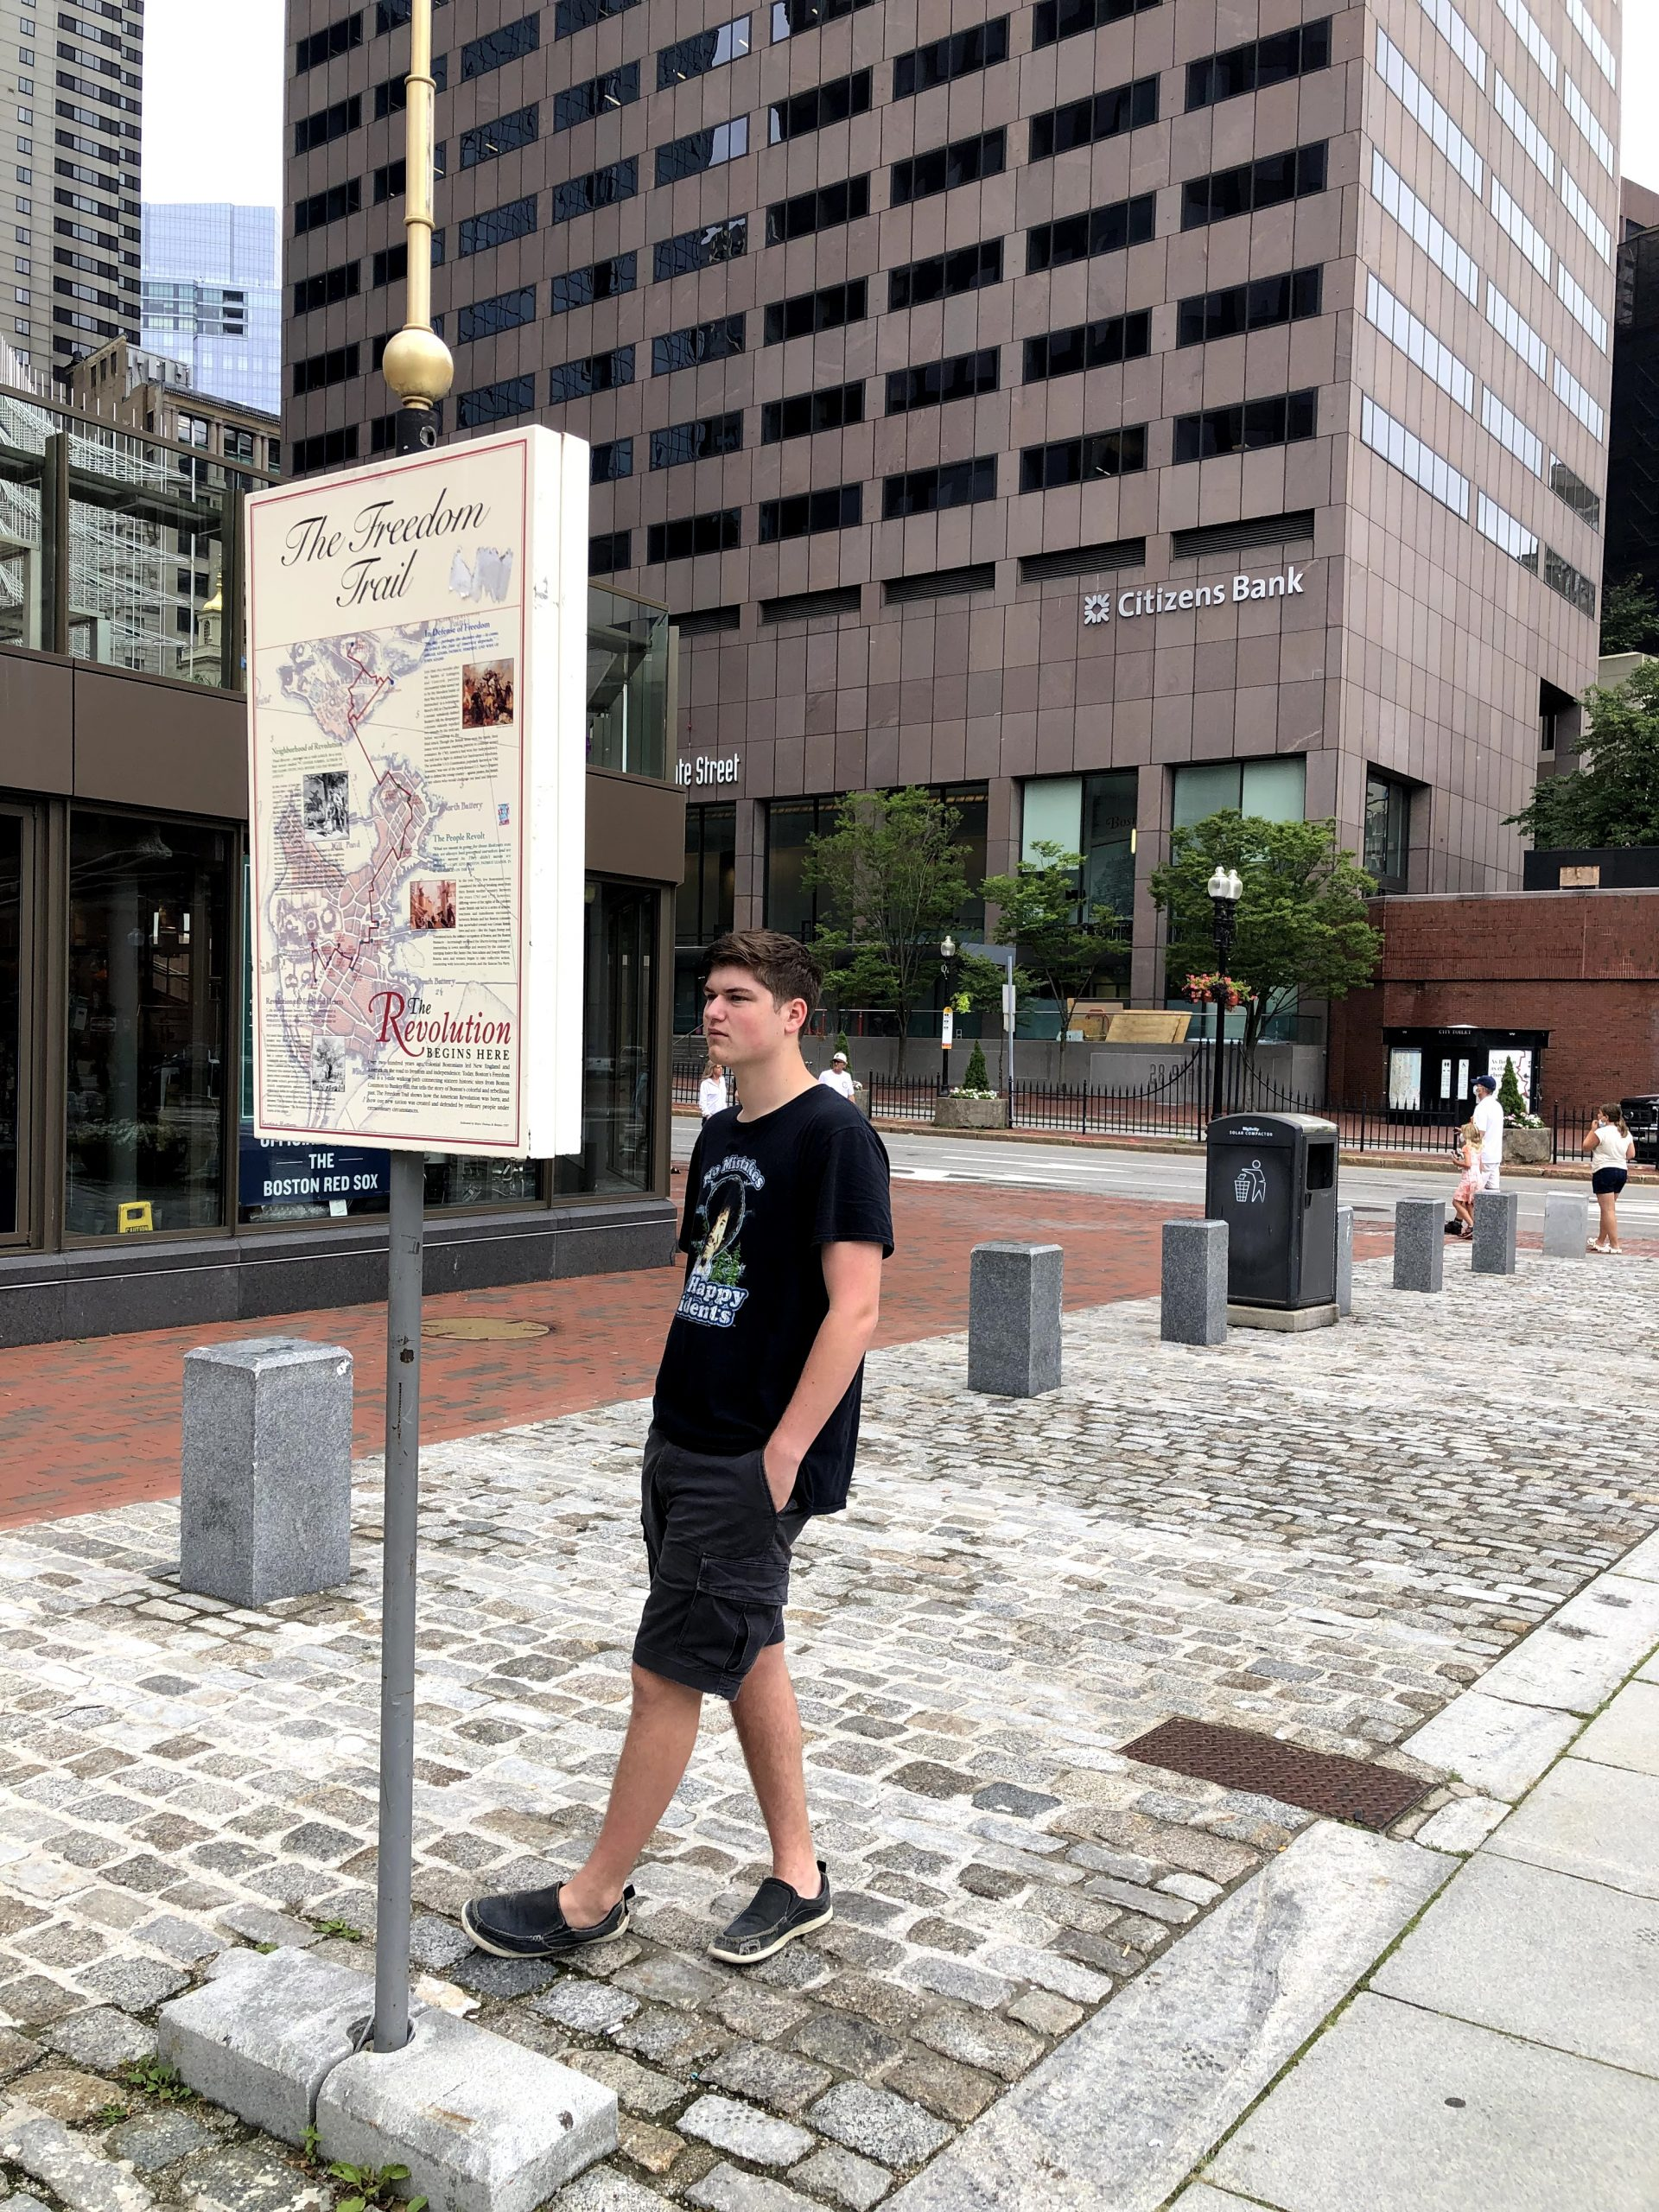 Top Things to Do in Boston: Freedom Trail